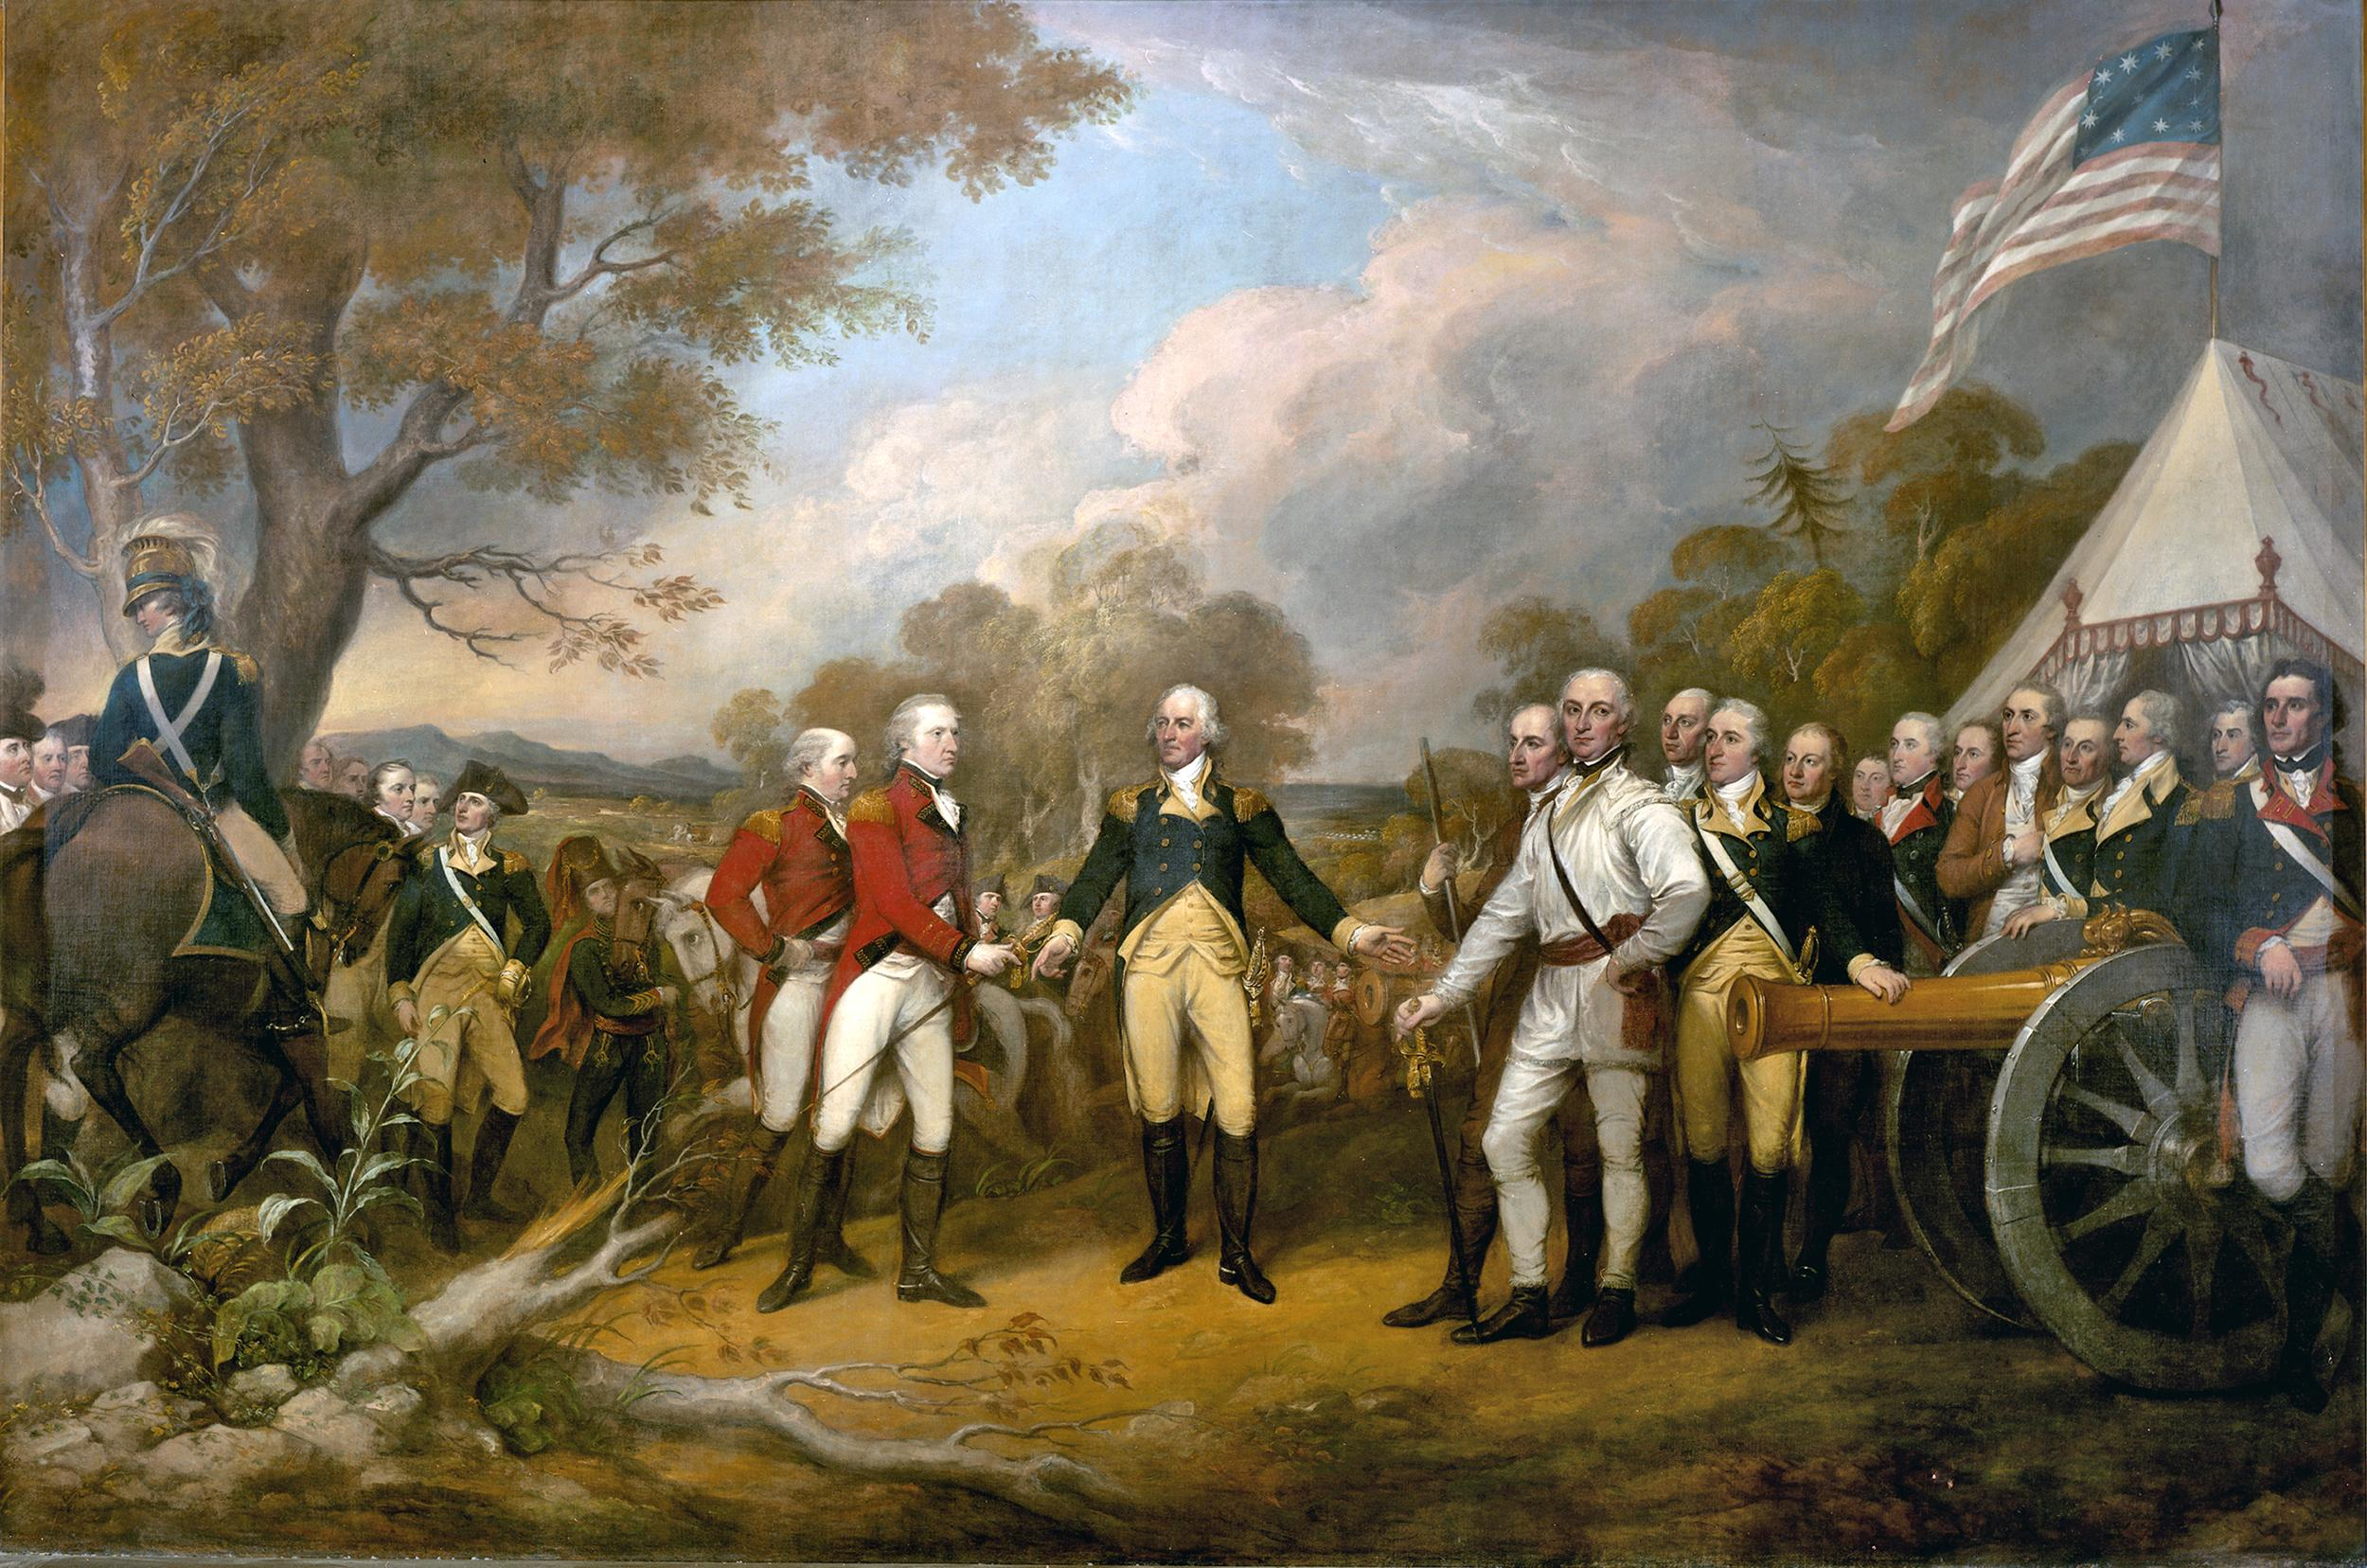 Surrender of General Burgoyne, by John Trumbull, c. 1821. Courtesy the Architect of the Capitol